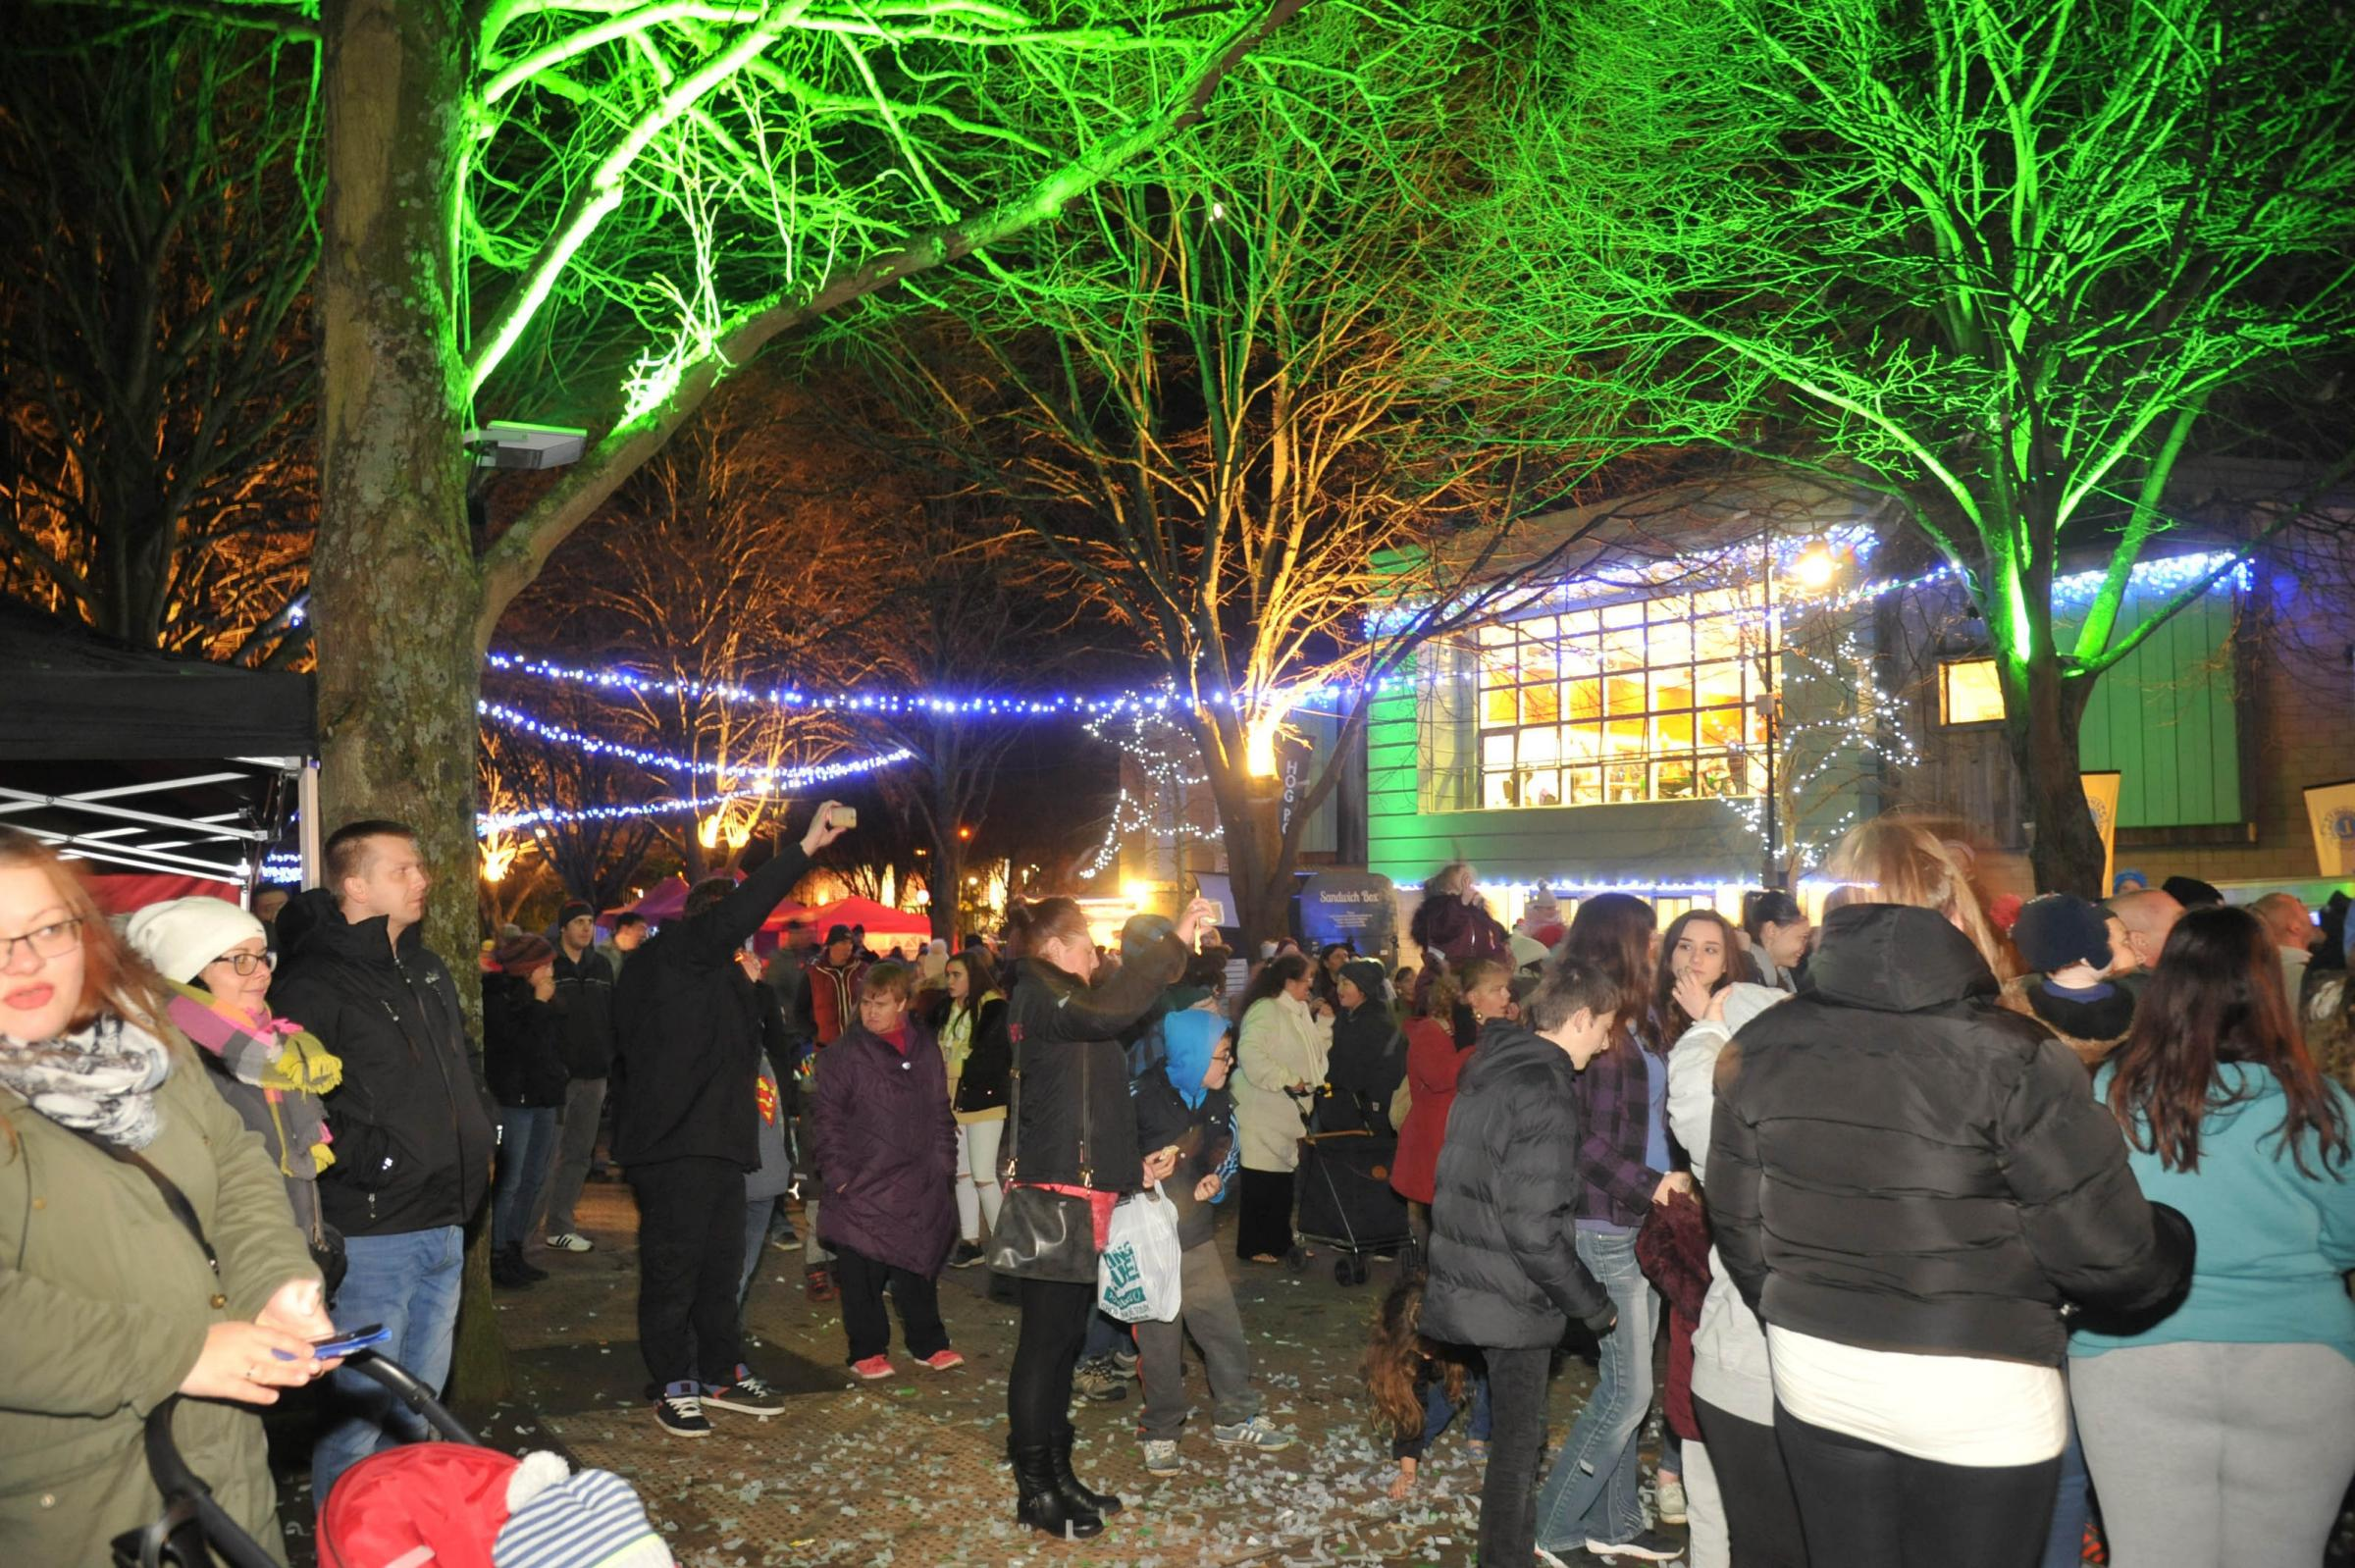 Trowbridge Christmas Lights Switch On.Trowbridge Christmas Lights at the Towns Civic Centre. Photo: Trevor Porter 59249 9..